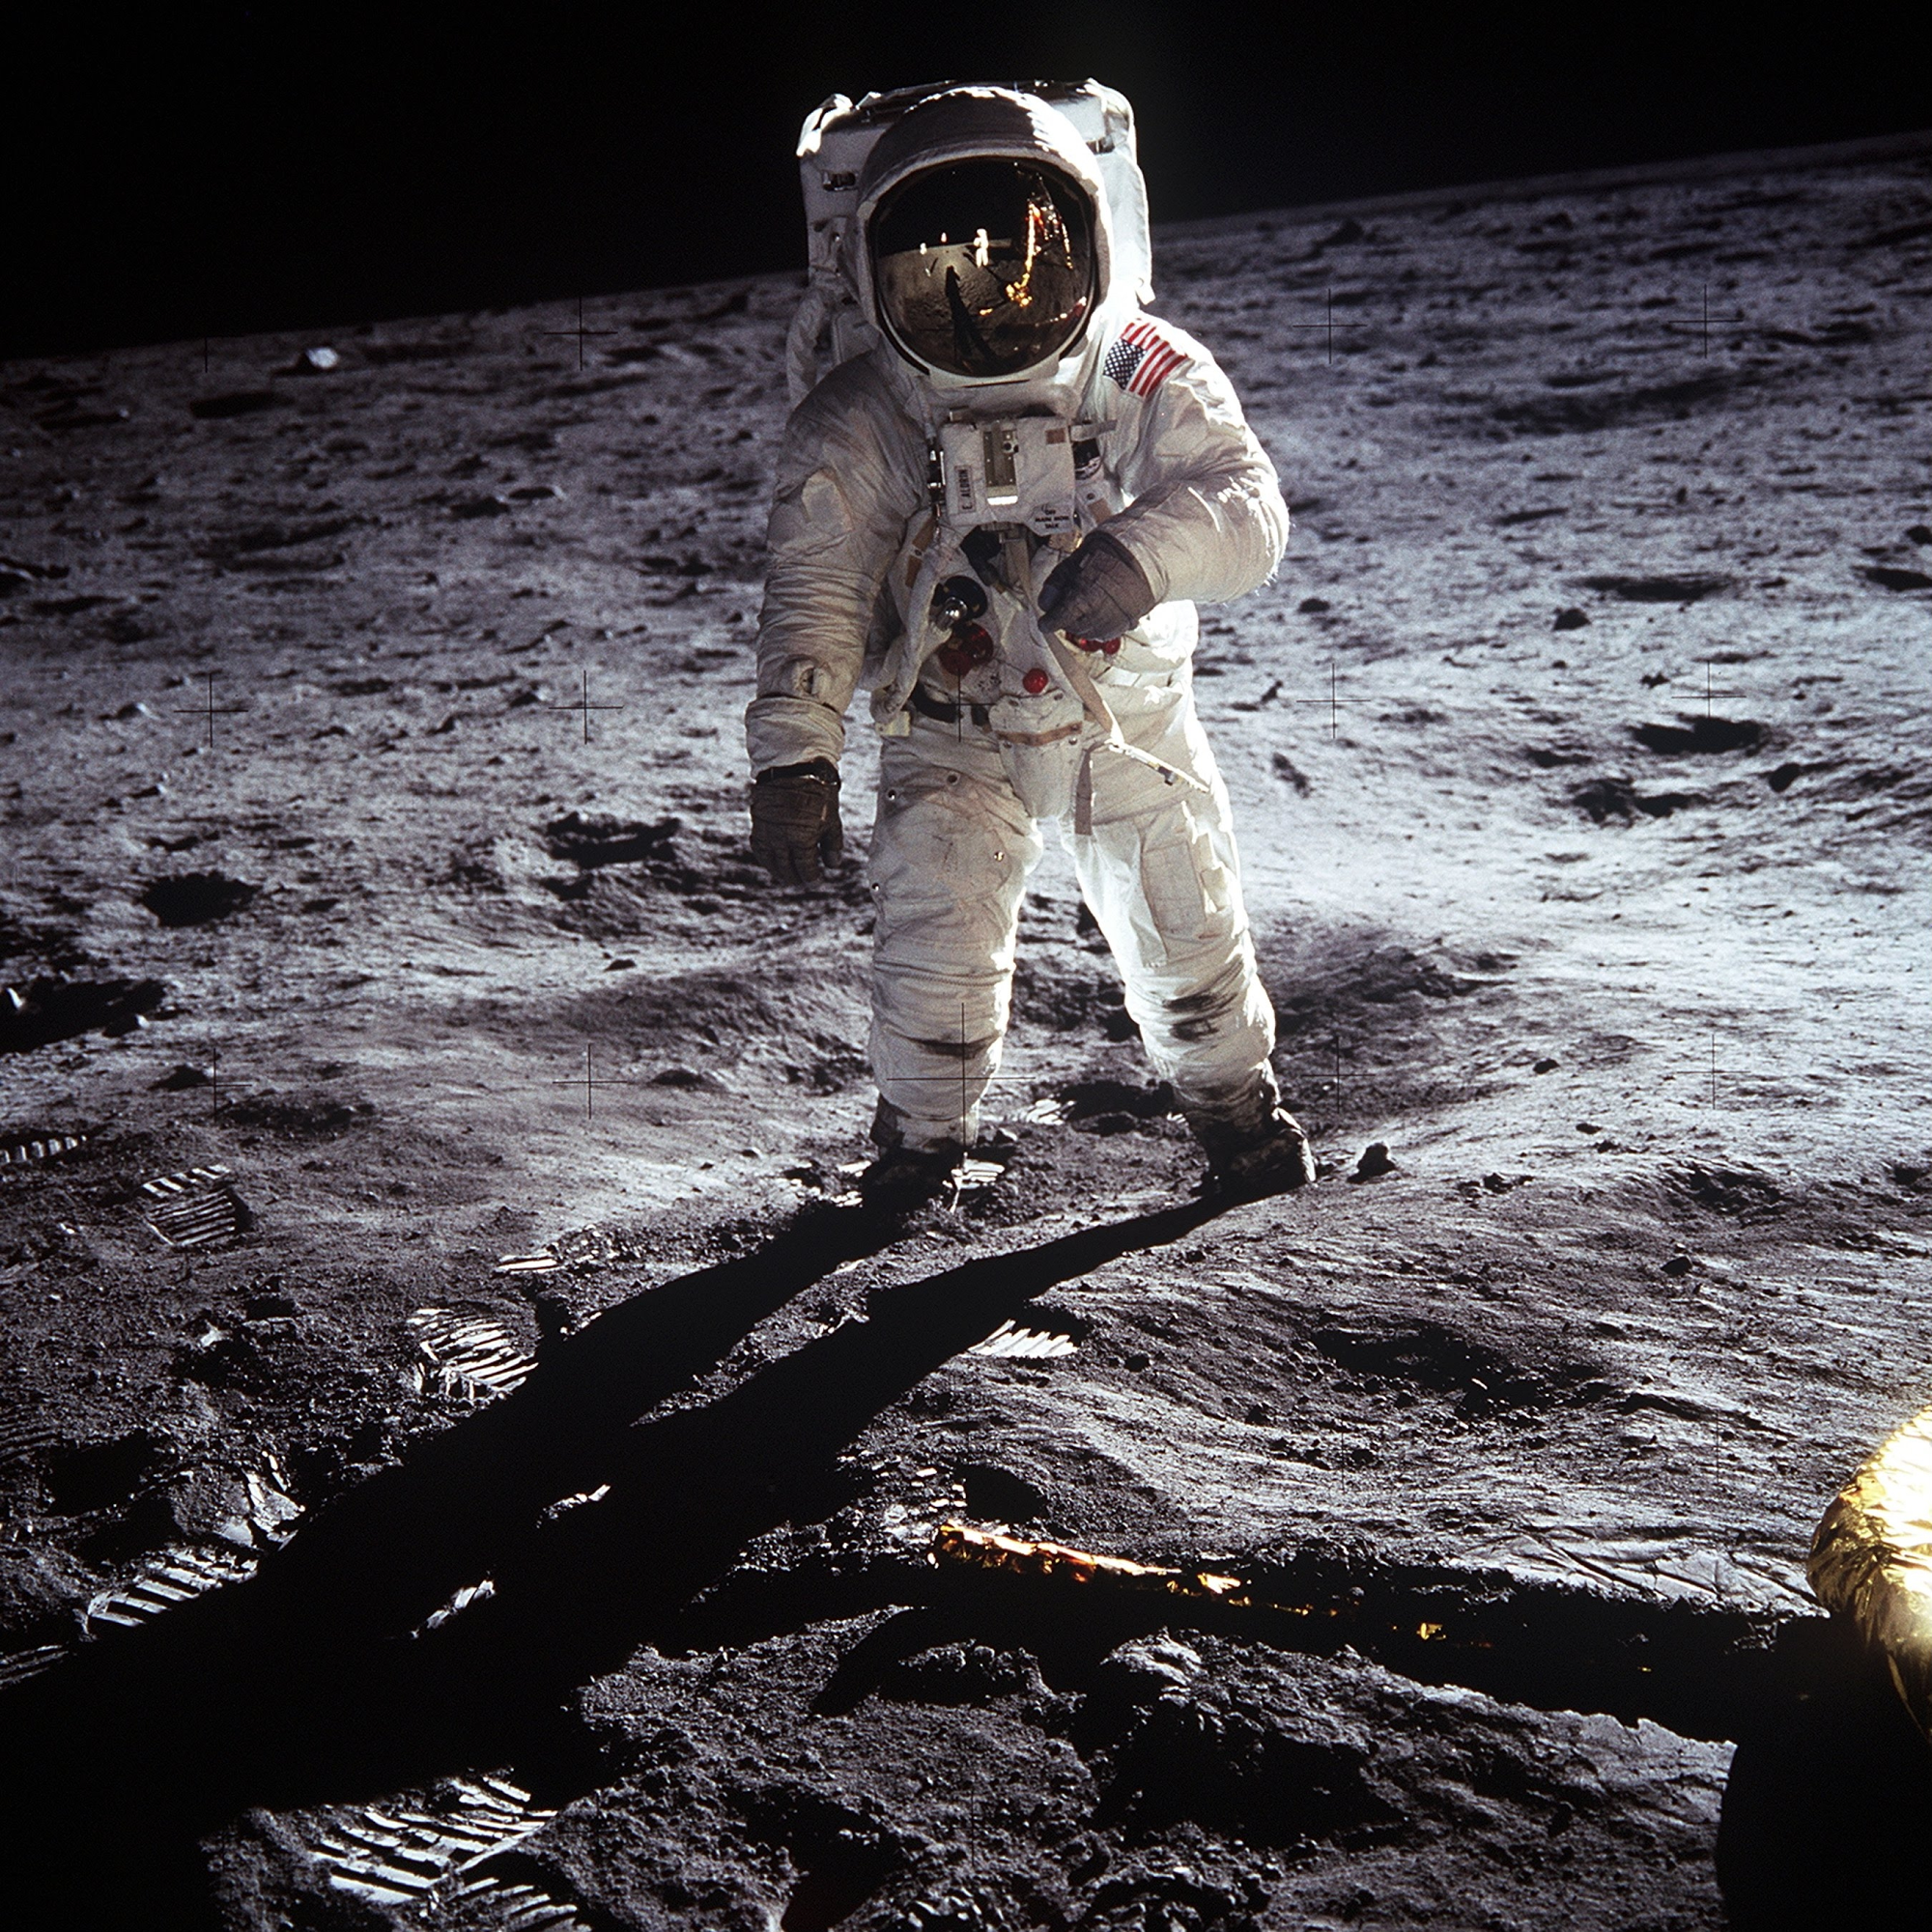 A different sort of moonshot: looking back on Apollo 11